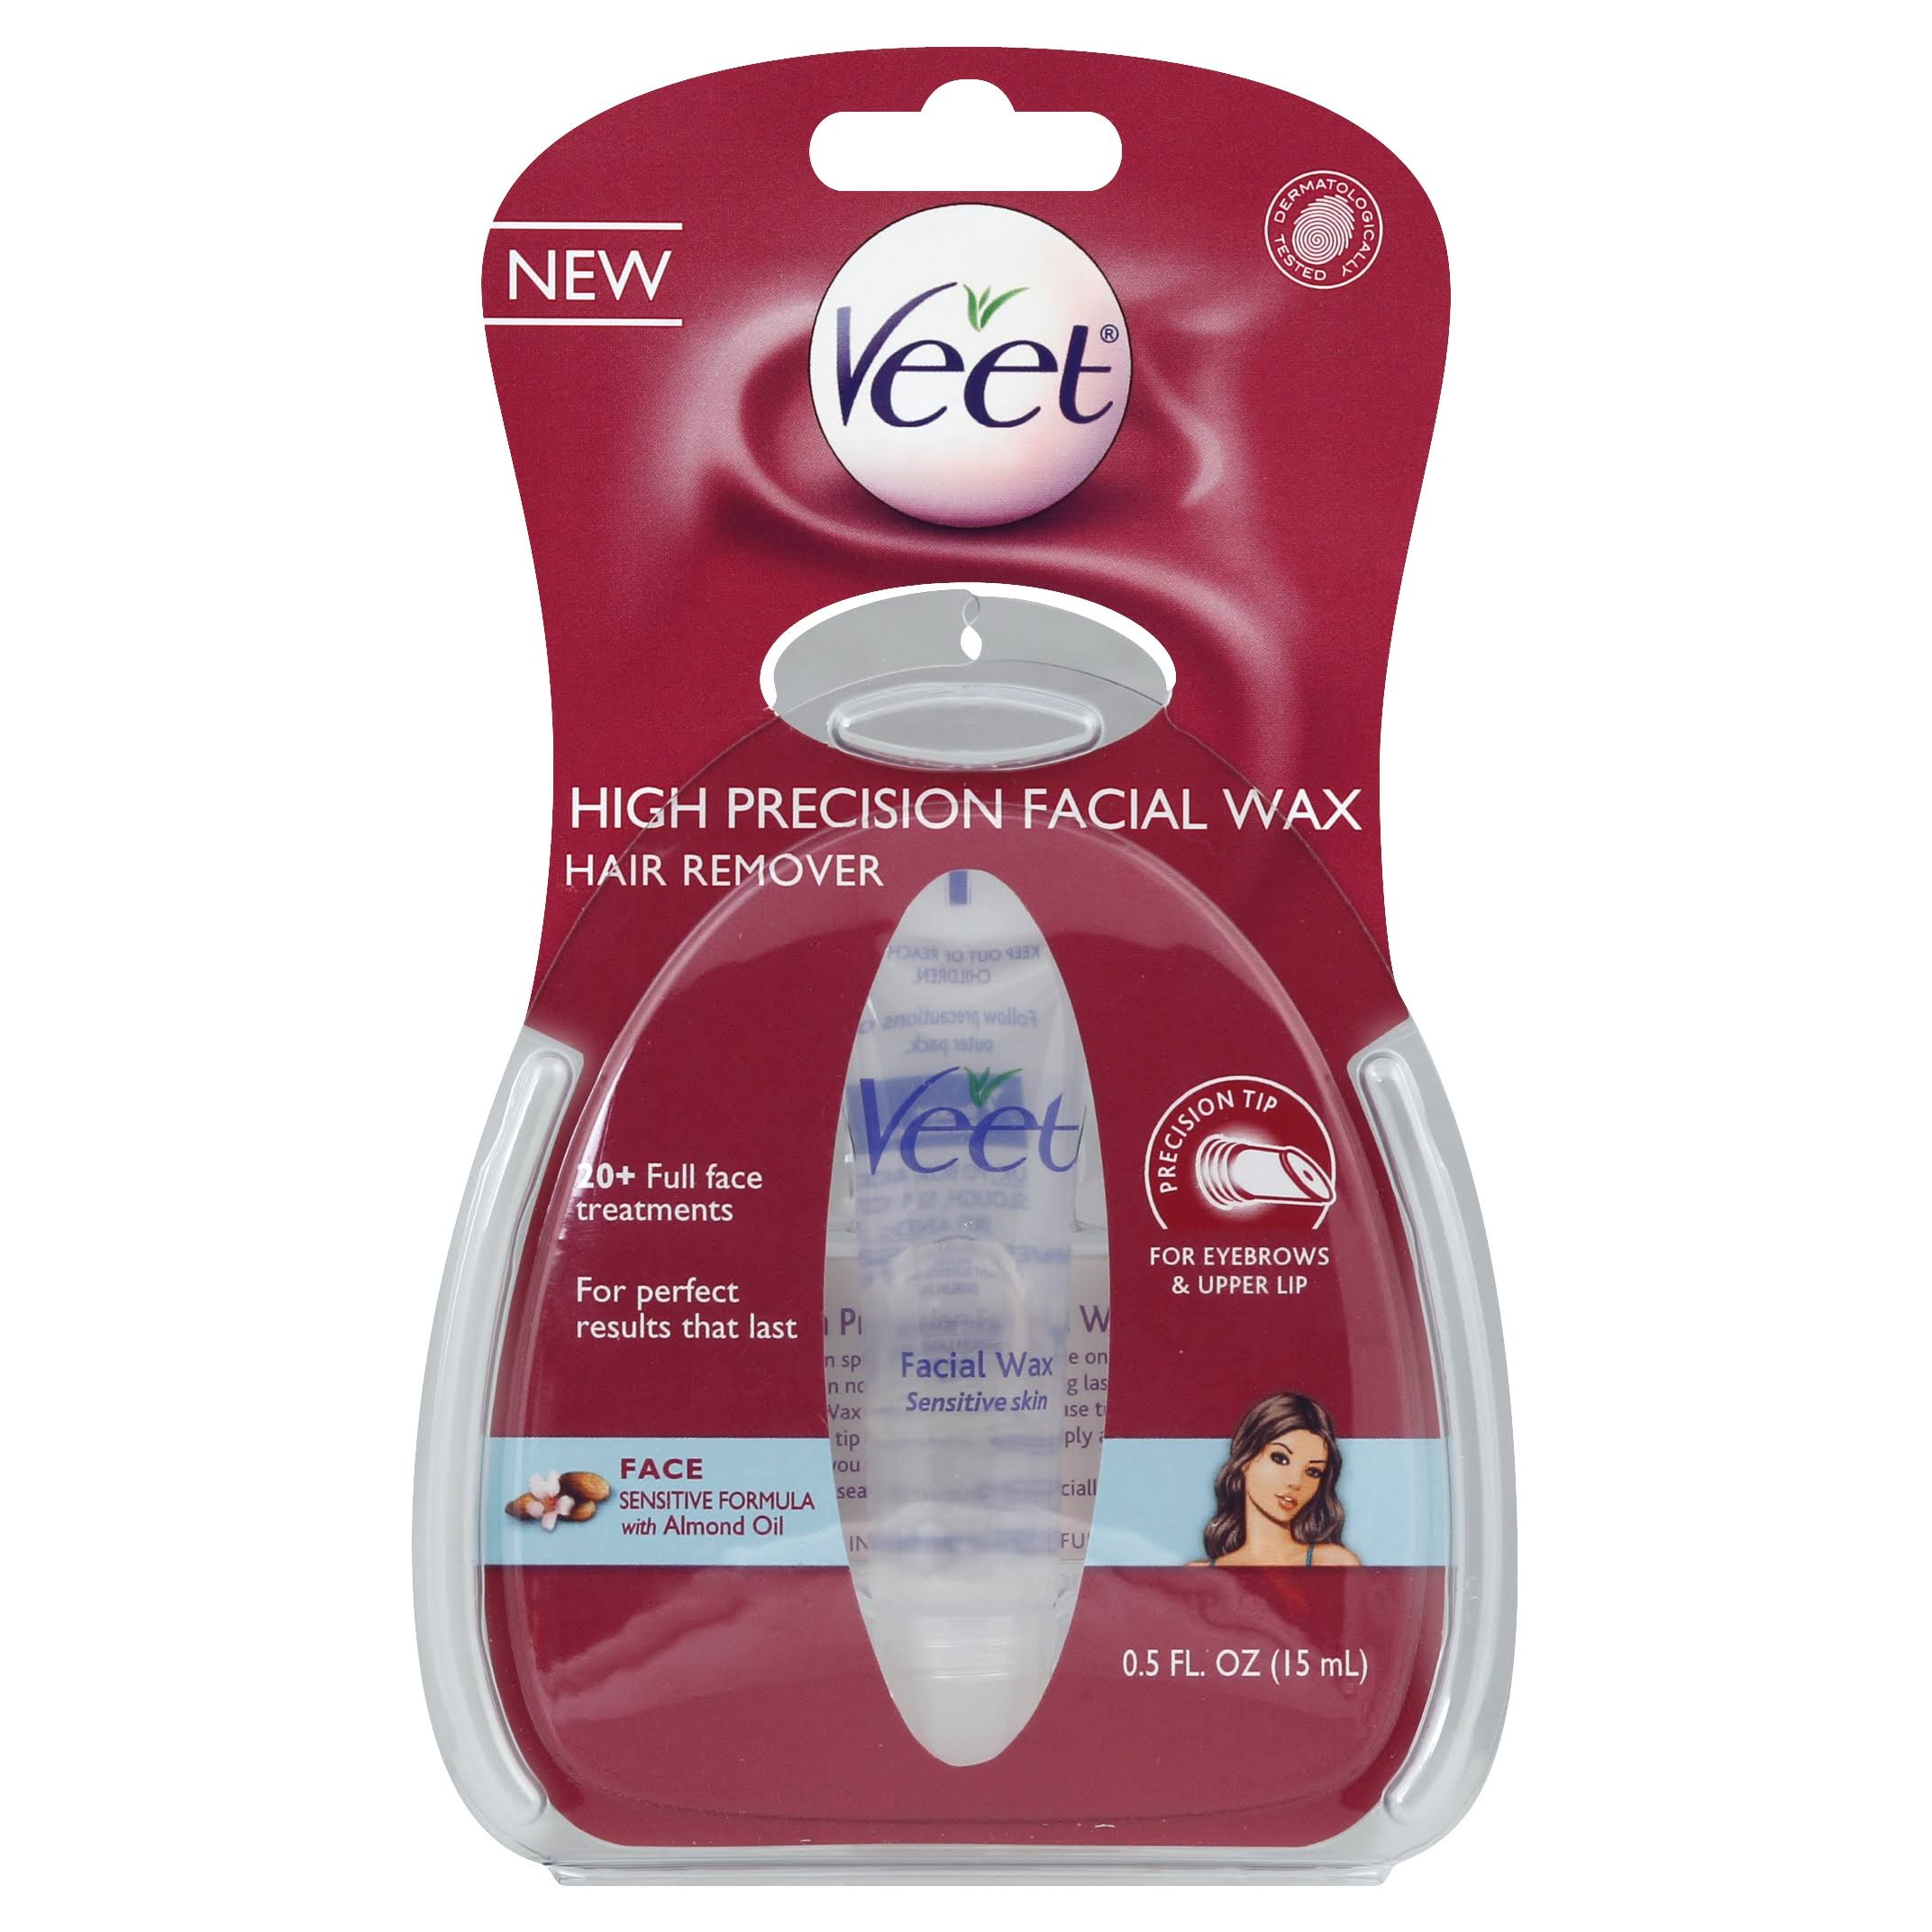 Veet High Precision Facial Wax Hair Remover